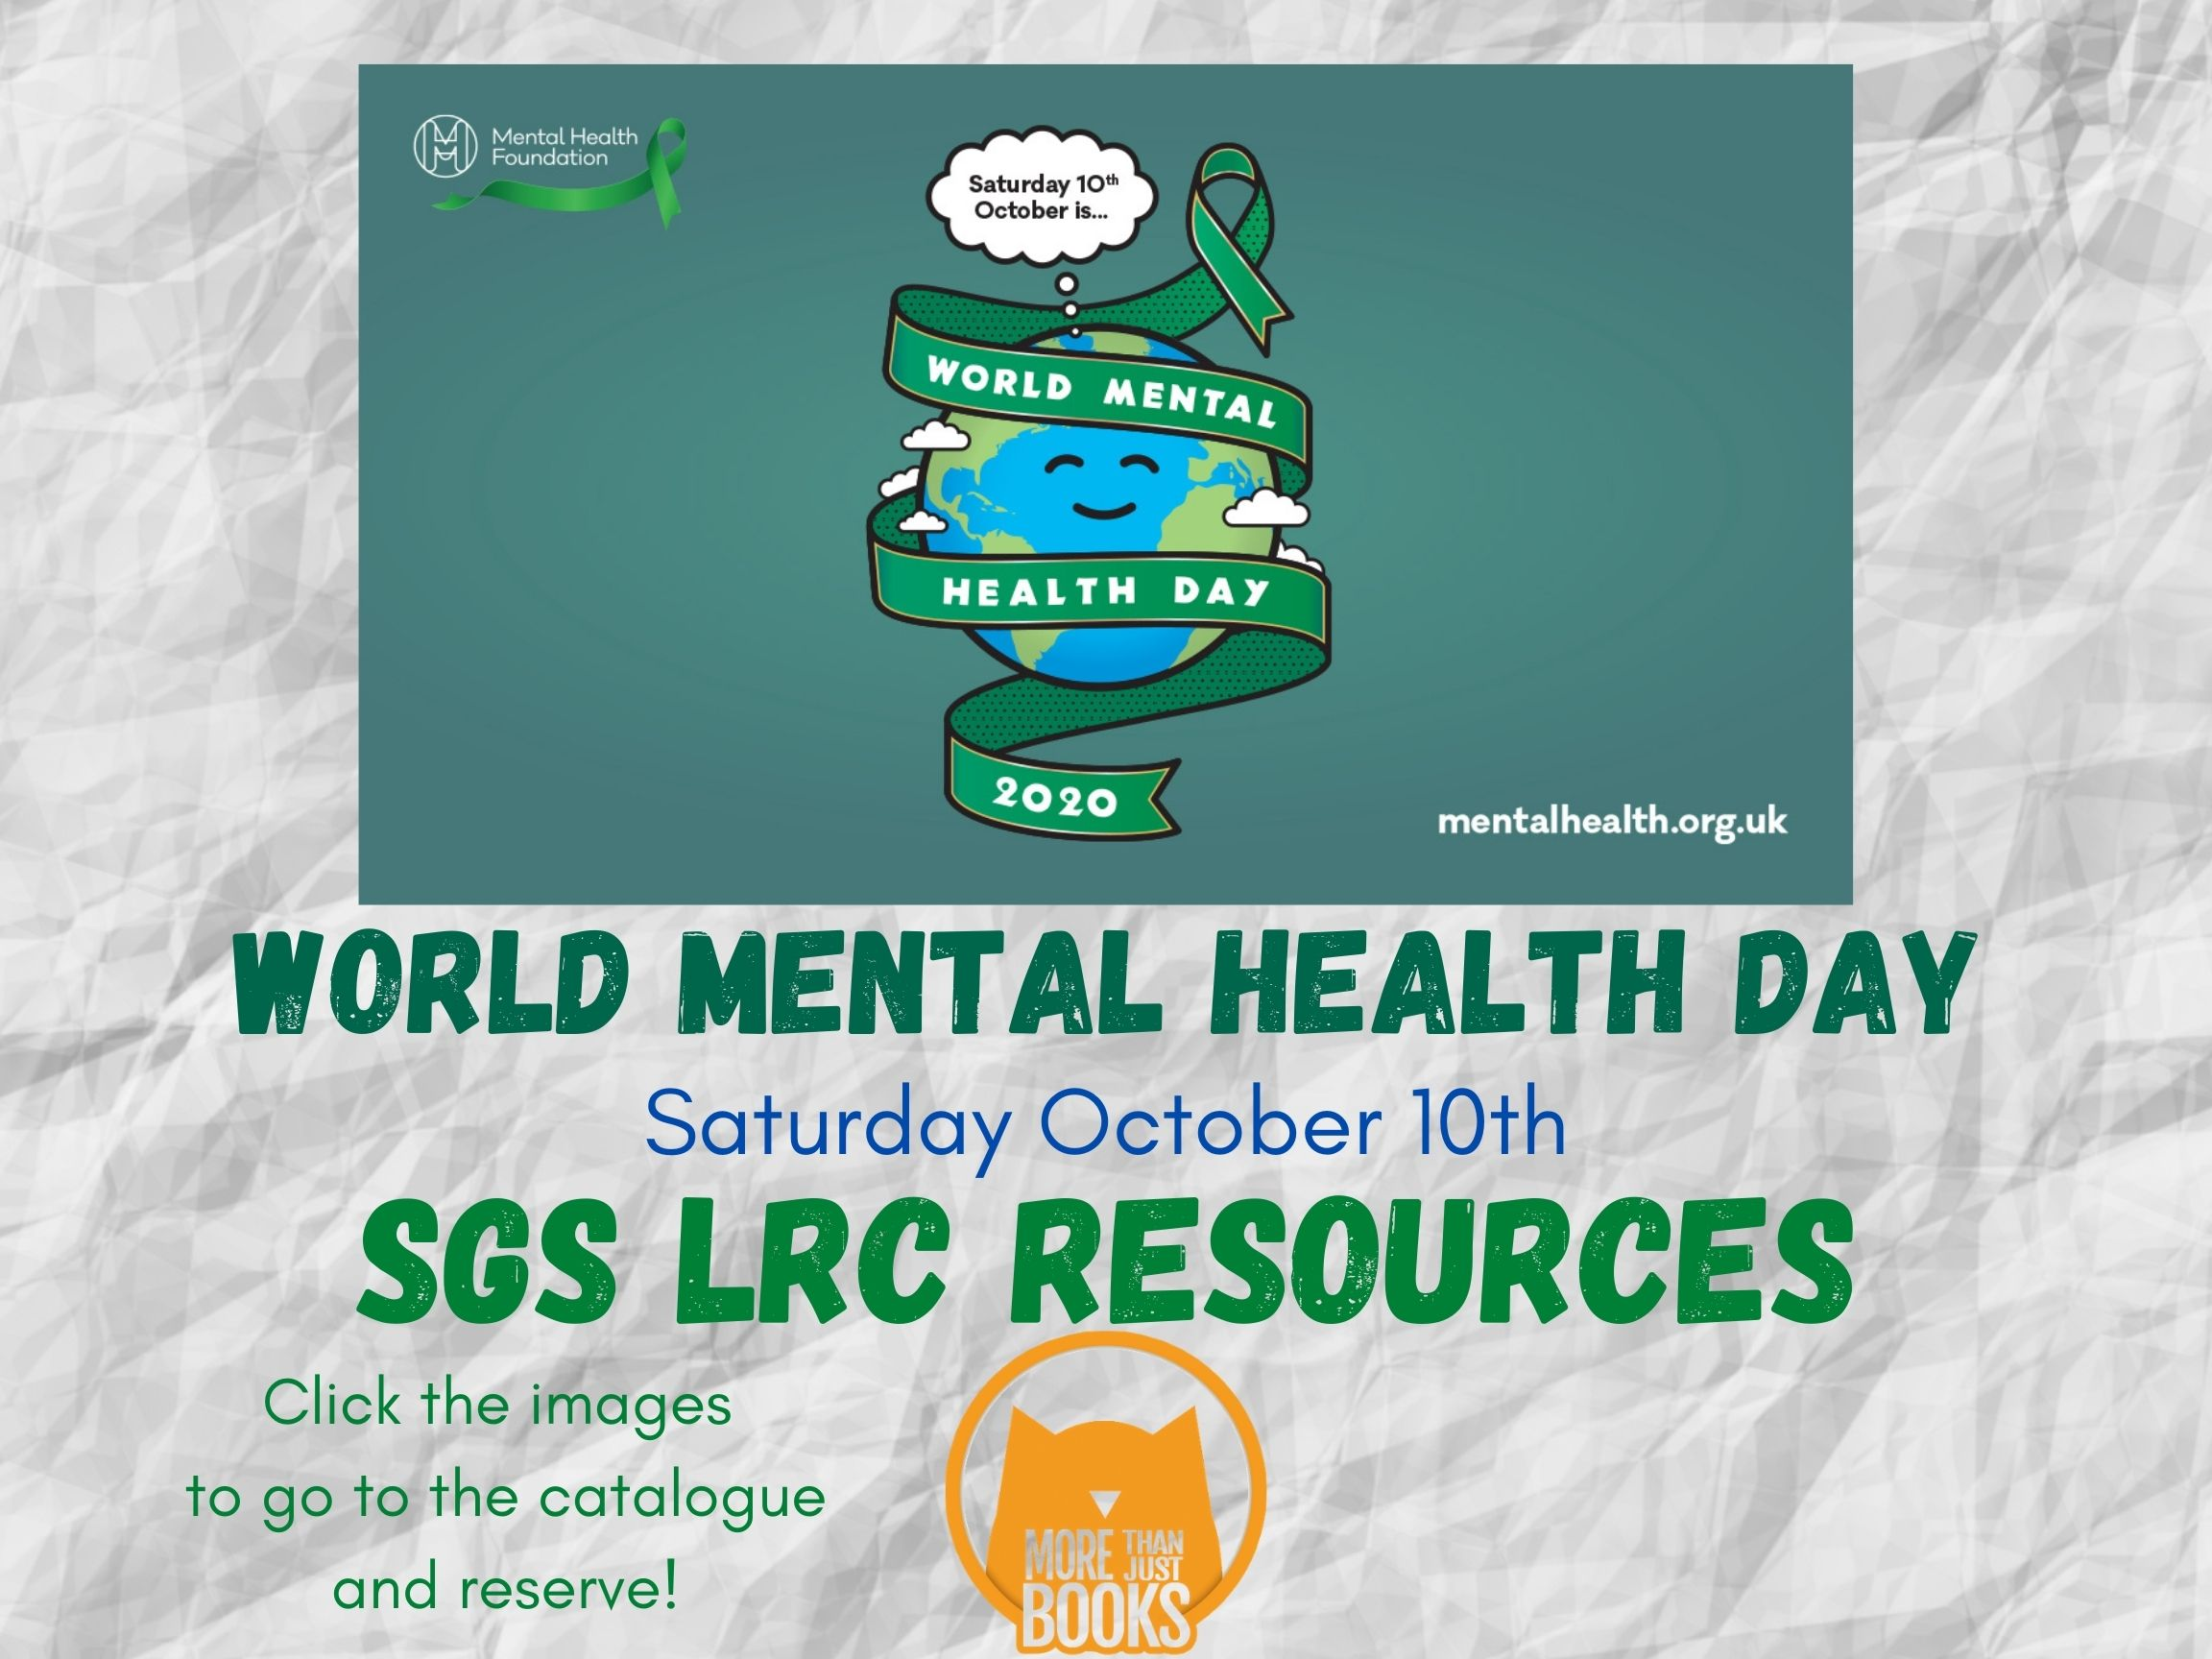 """Image description: white crumpled paper background. Teal green rectangle with the World Mental Health Day logo. This logo consists of a cartoon image of planet earth wrapped in a ribbon, which reads """"World Mental Health Day 2020"""". The earth has a thought bubble which contains the text, """"Saturday 10th October"""". Text beneath in green and blue font reads """"World Mental Health Day / Saturday October 10th / SGS LRC Resources / Click the images to go to the catalogue and reserve!"""""""